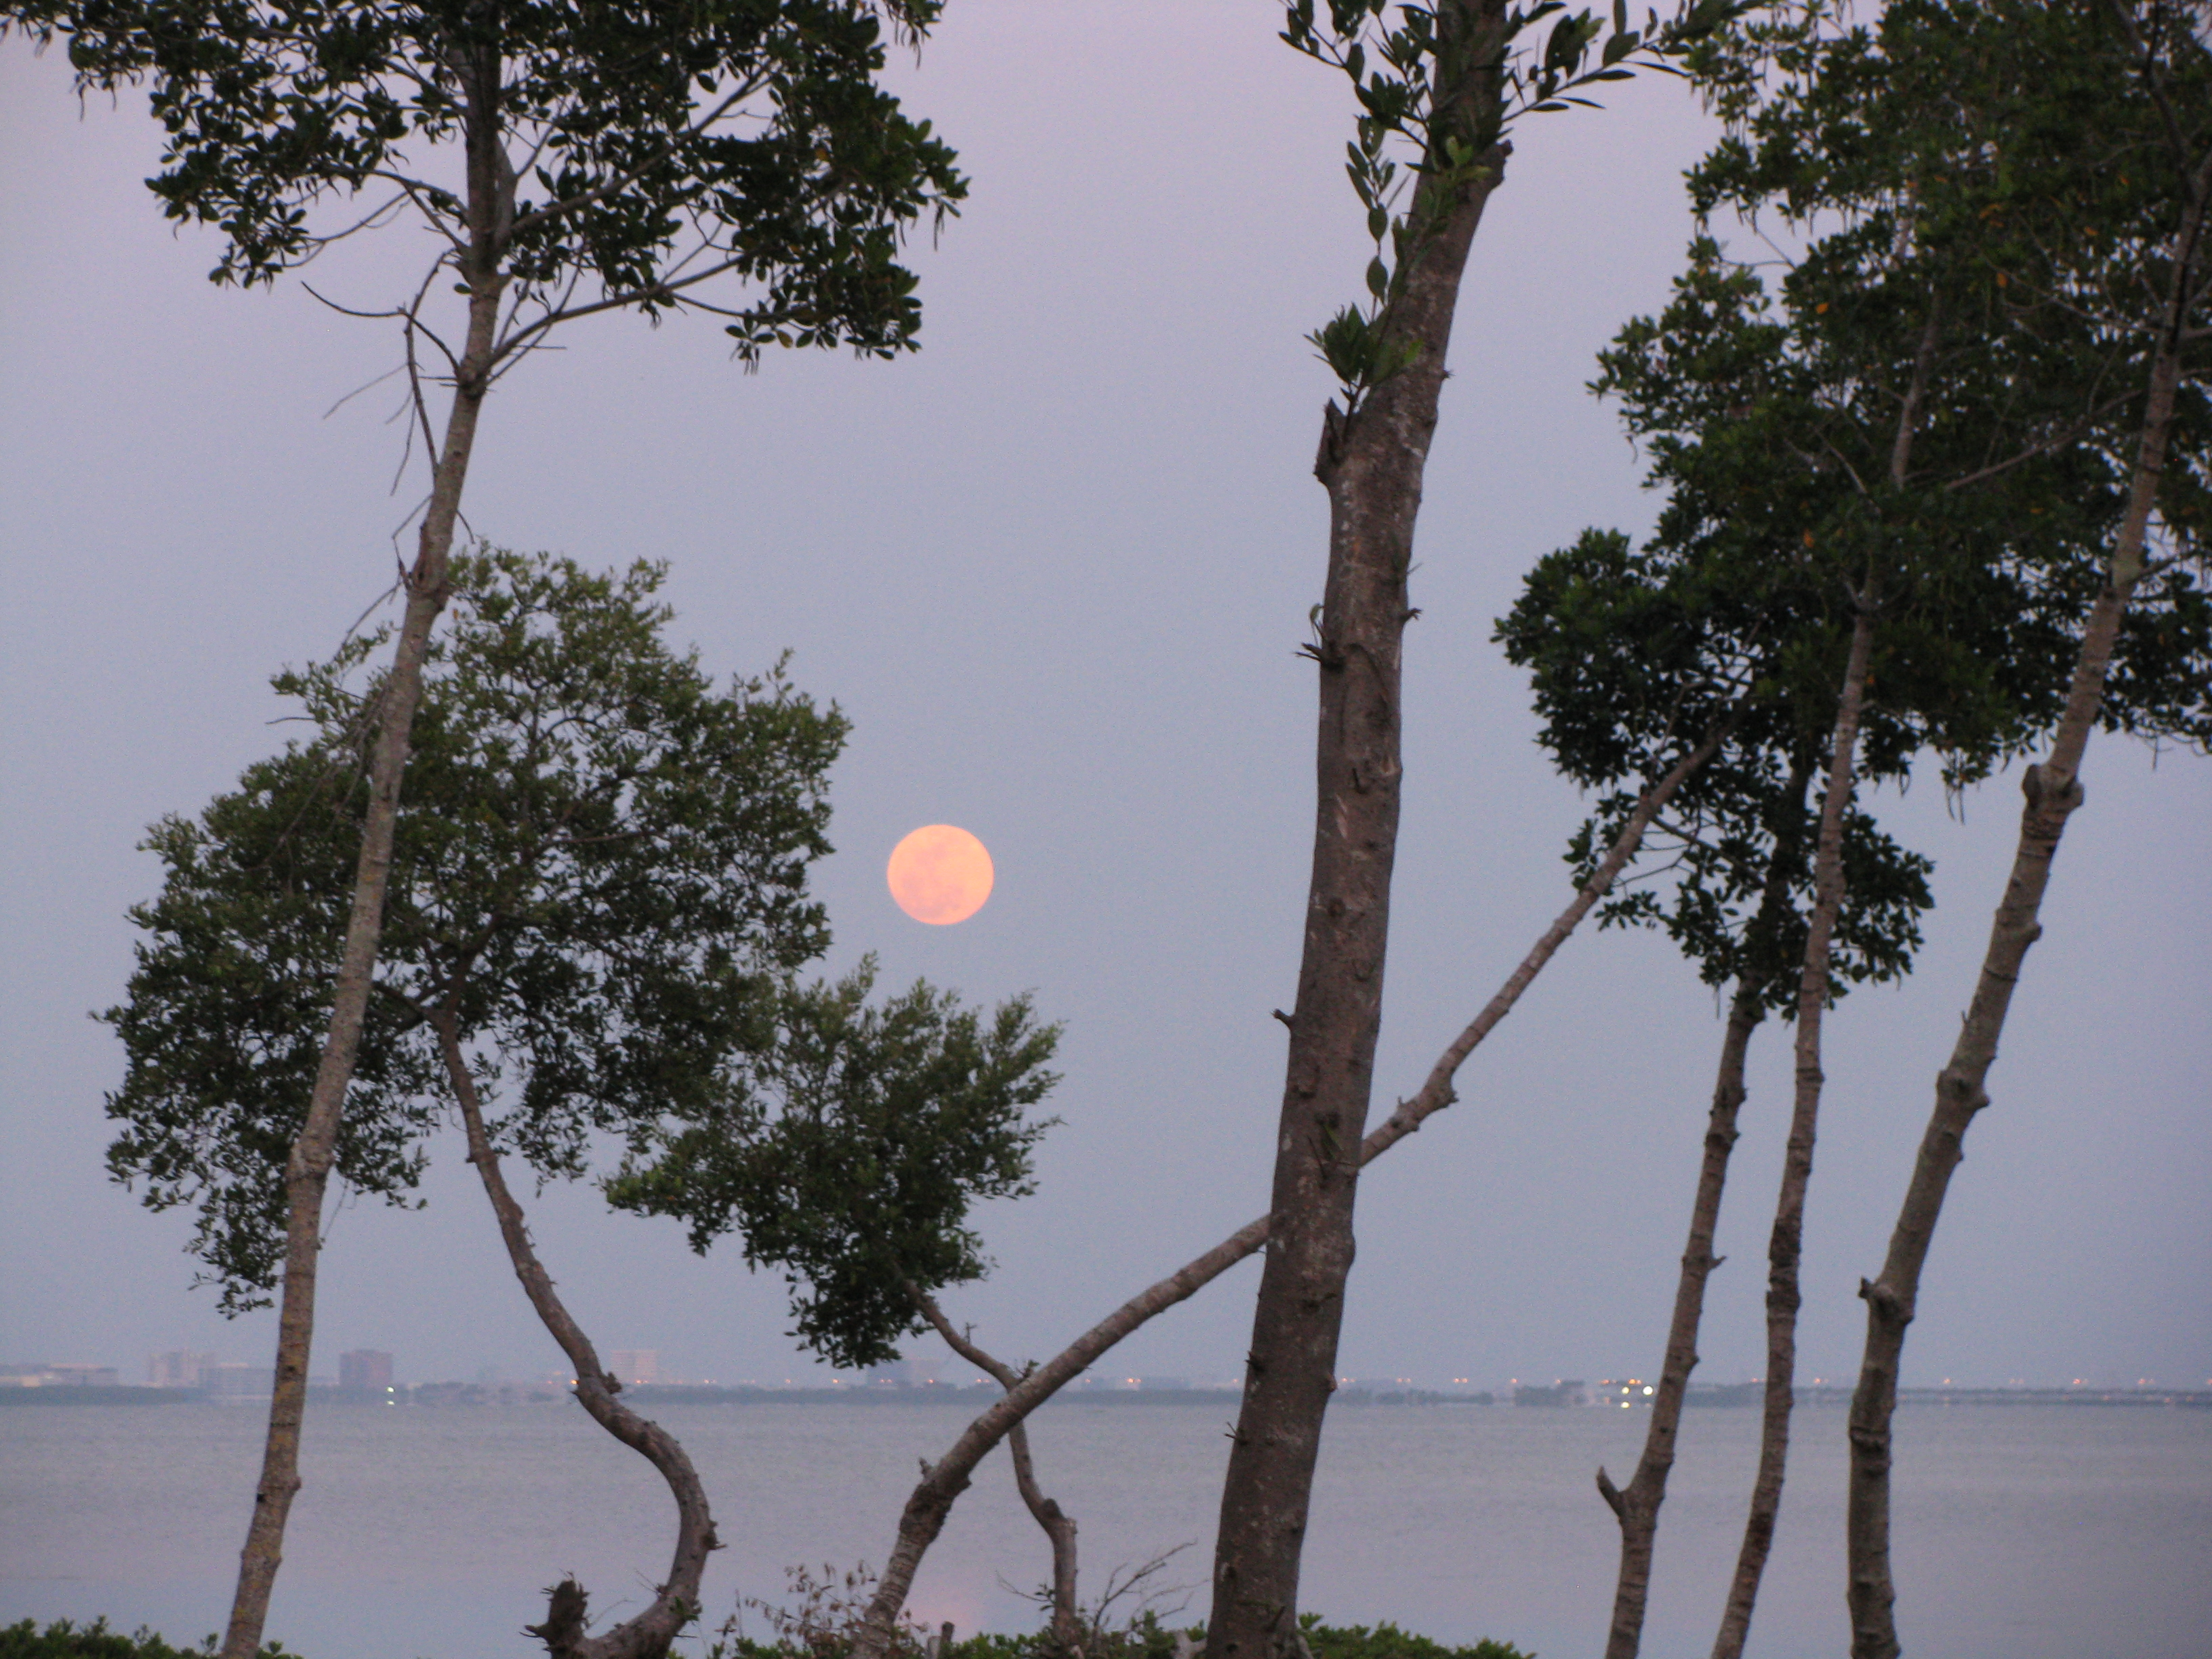 Super moon Tampa in the backfground 3